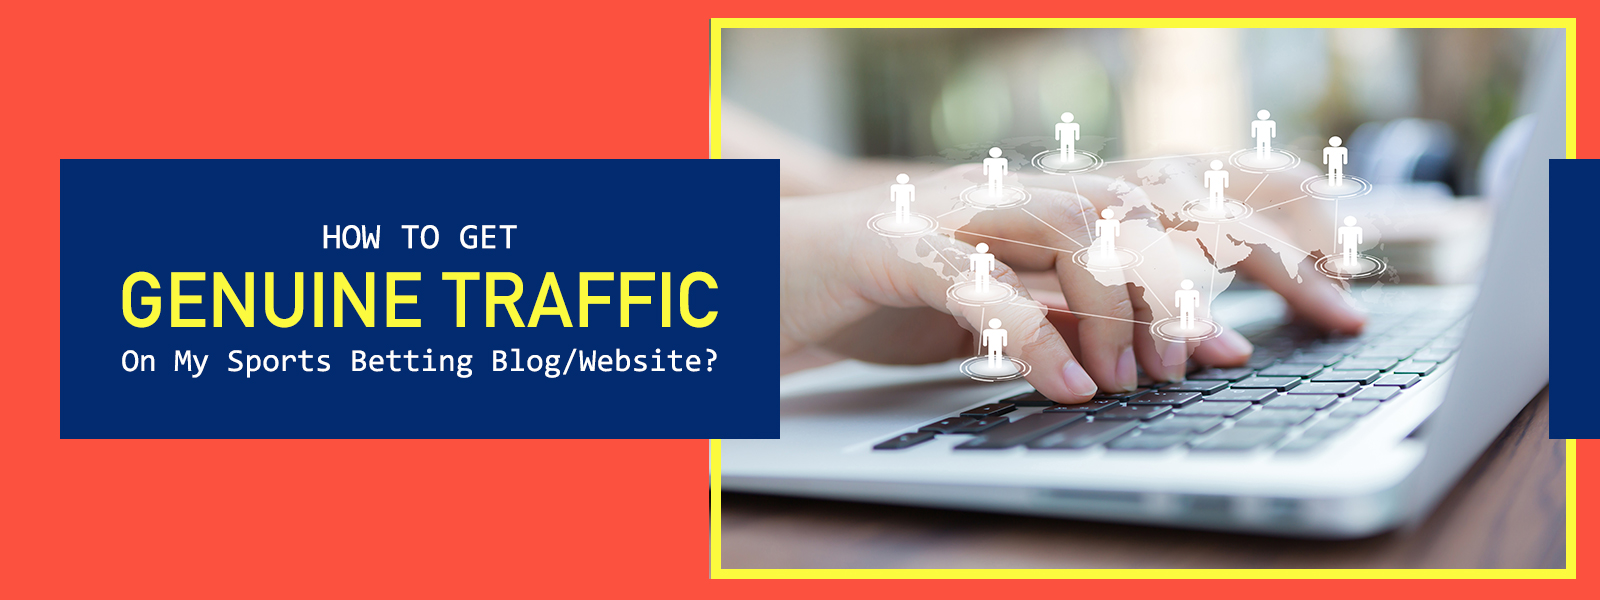 Genuine Traffics For Sports Betting Websites